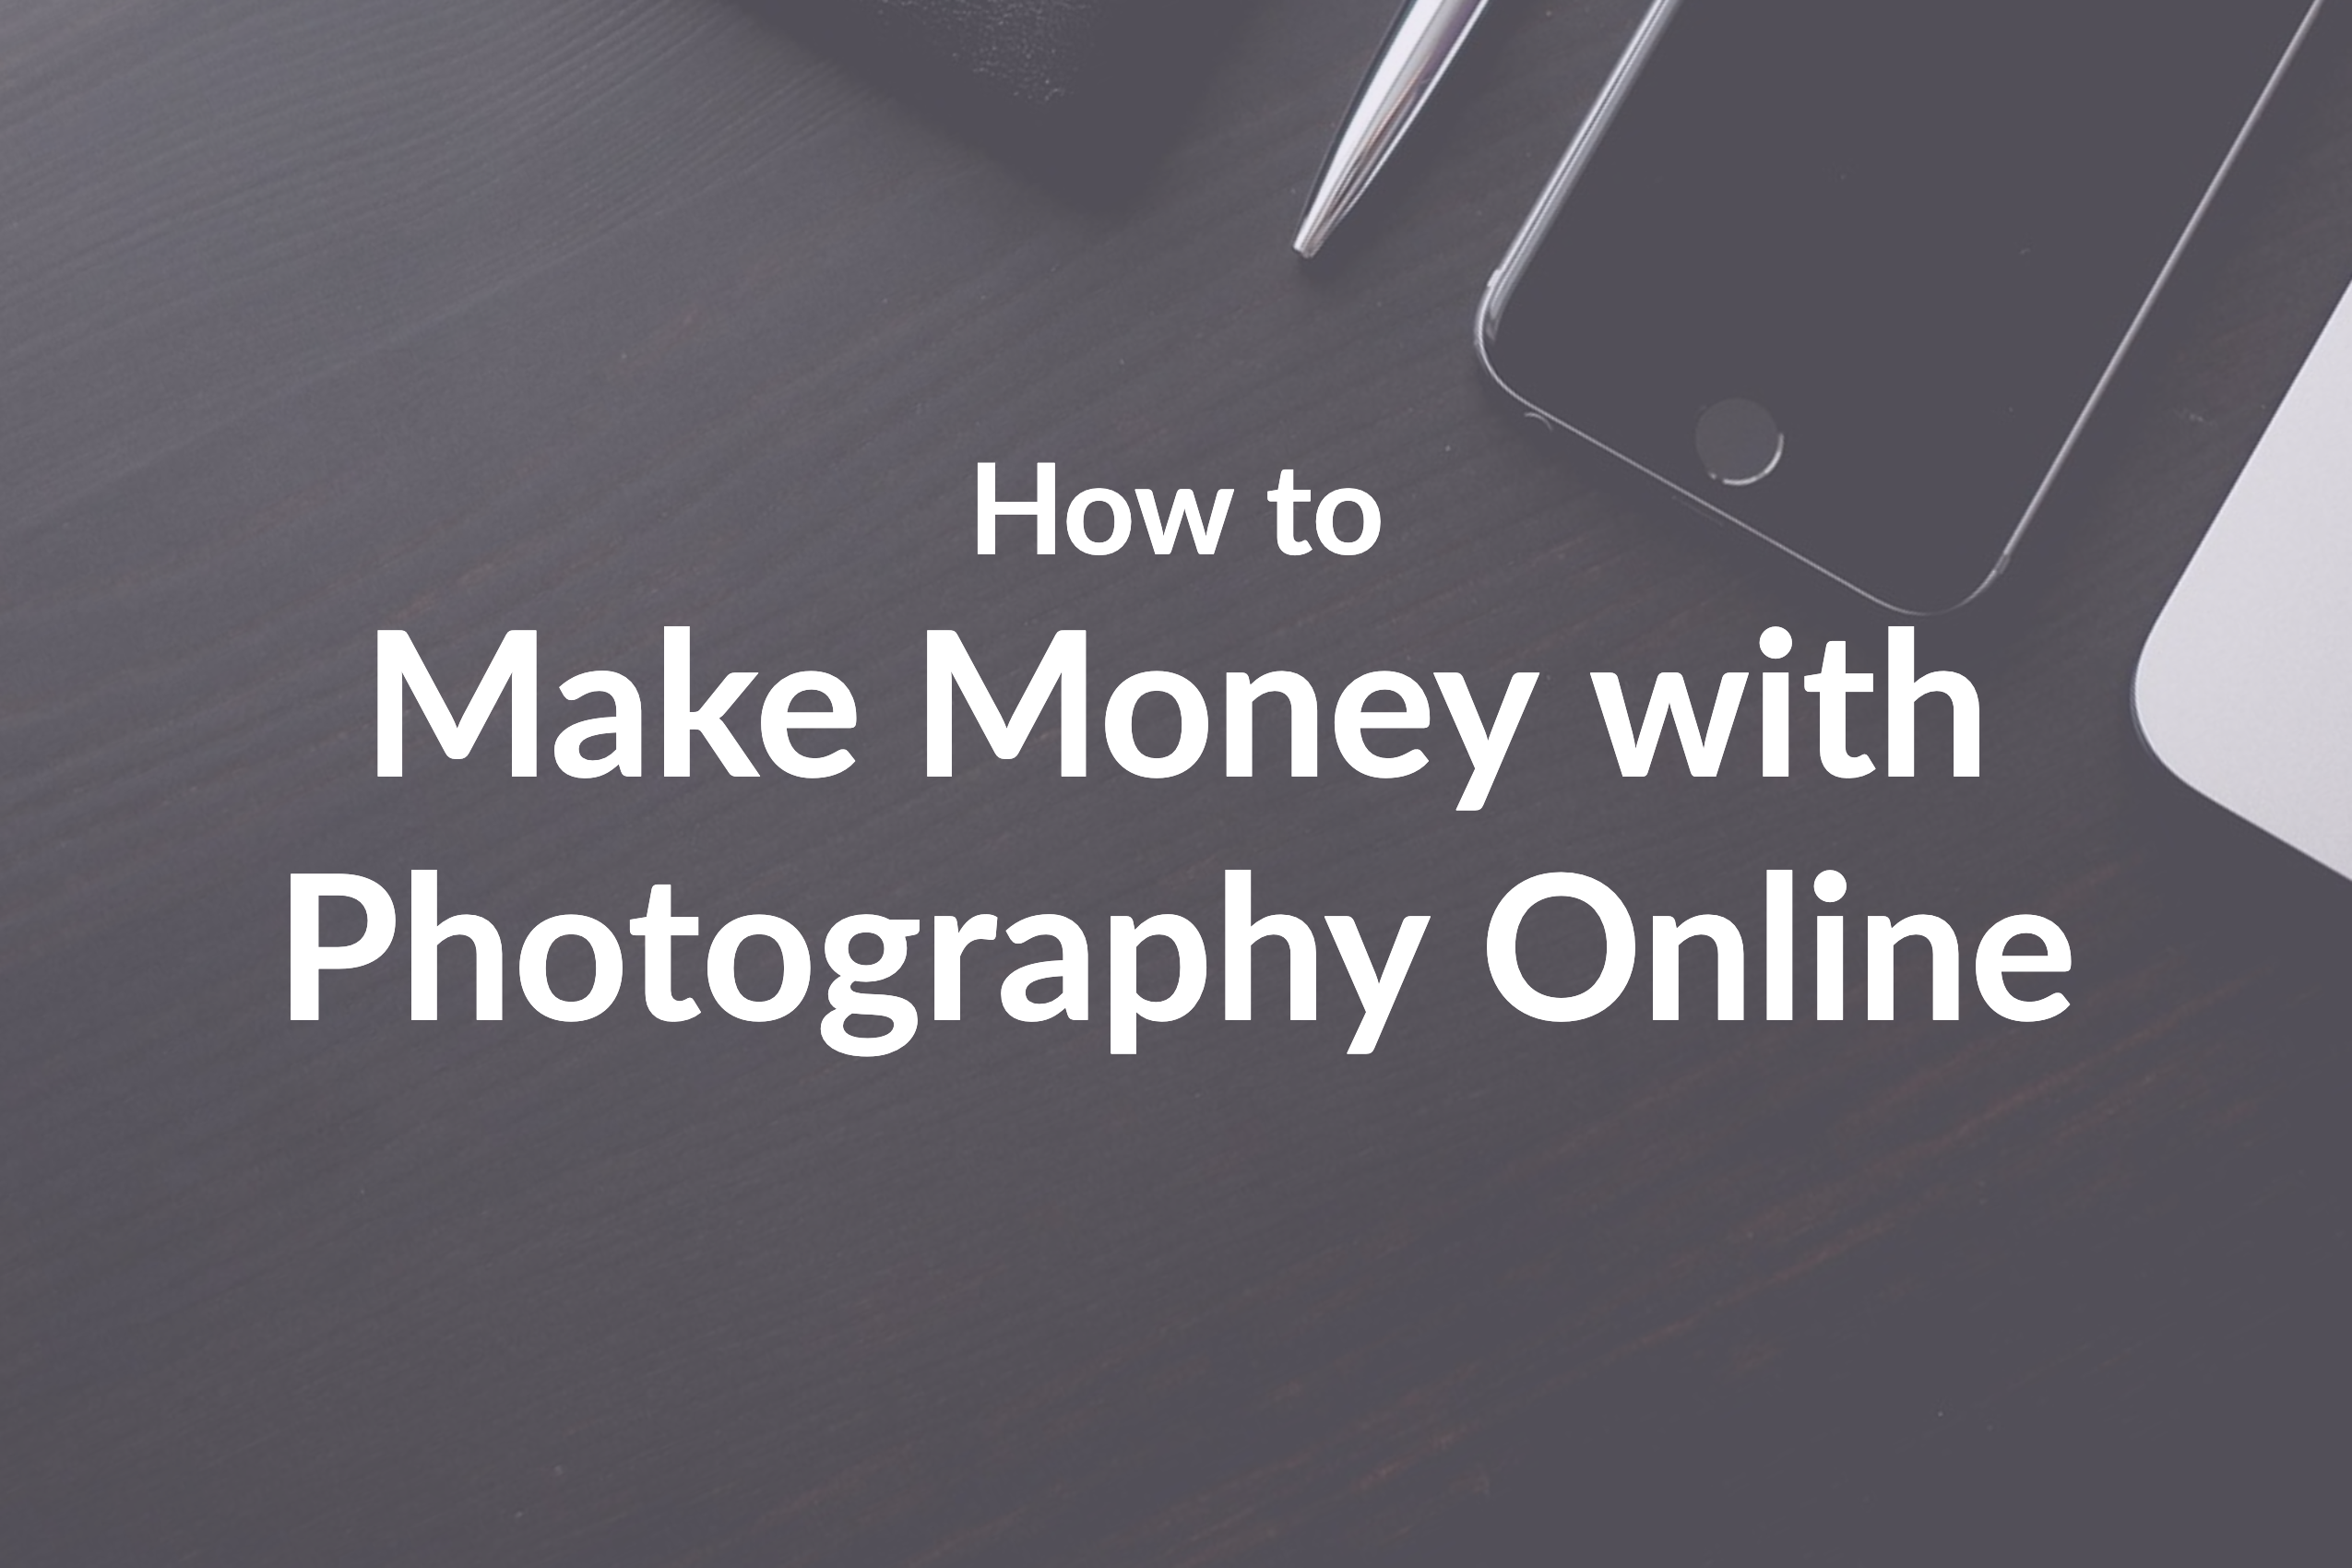 How to Make Money with Photography Online [7 Brilliant Ways]